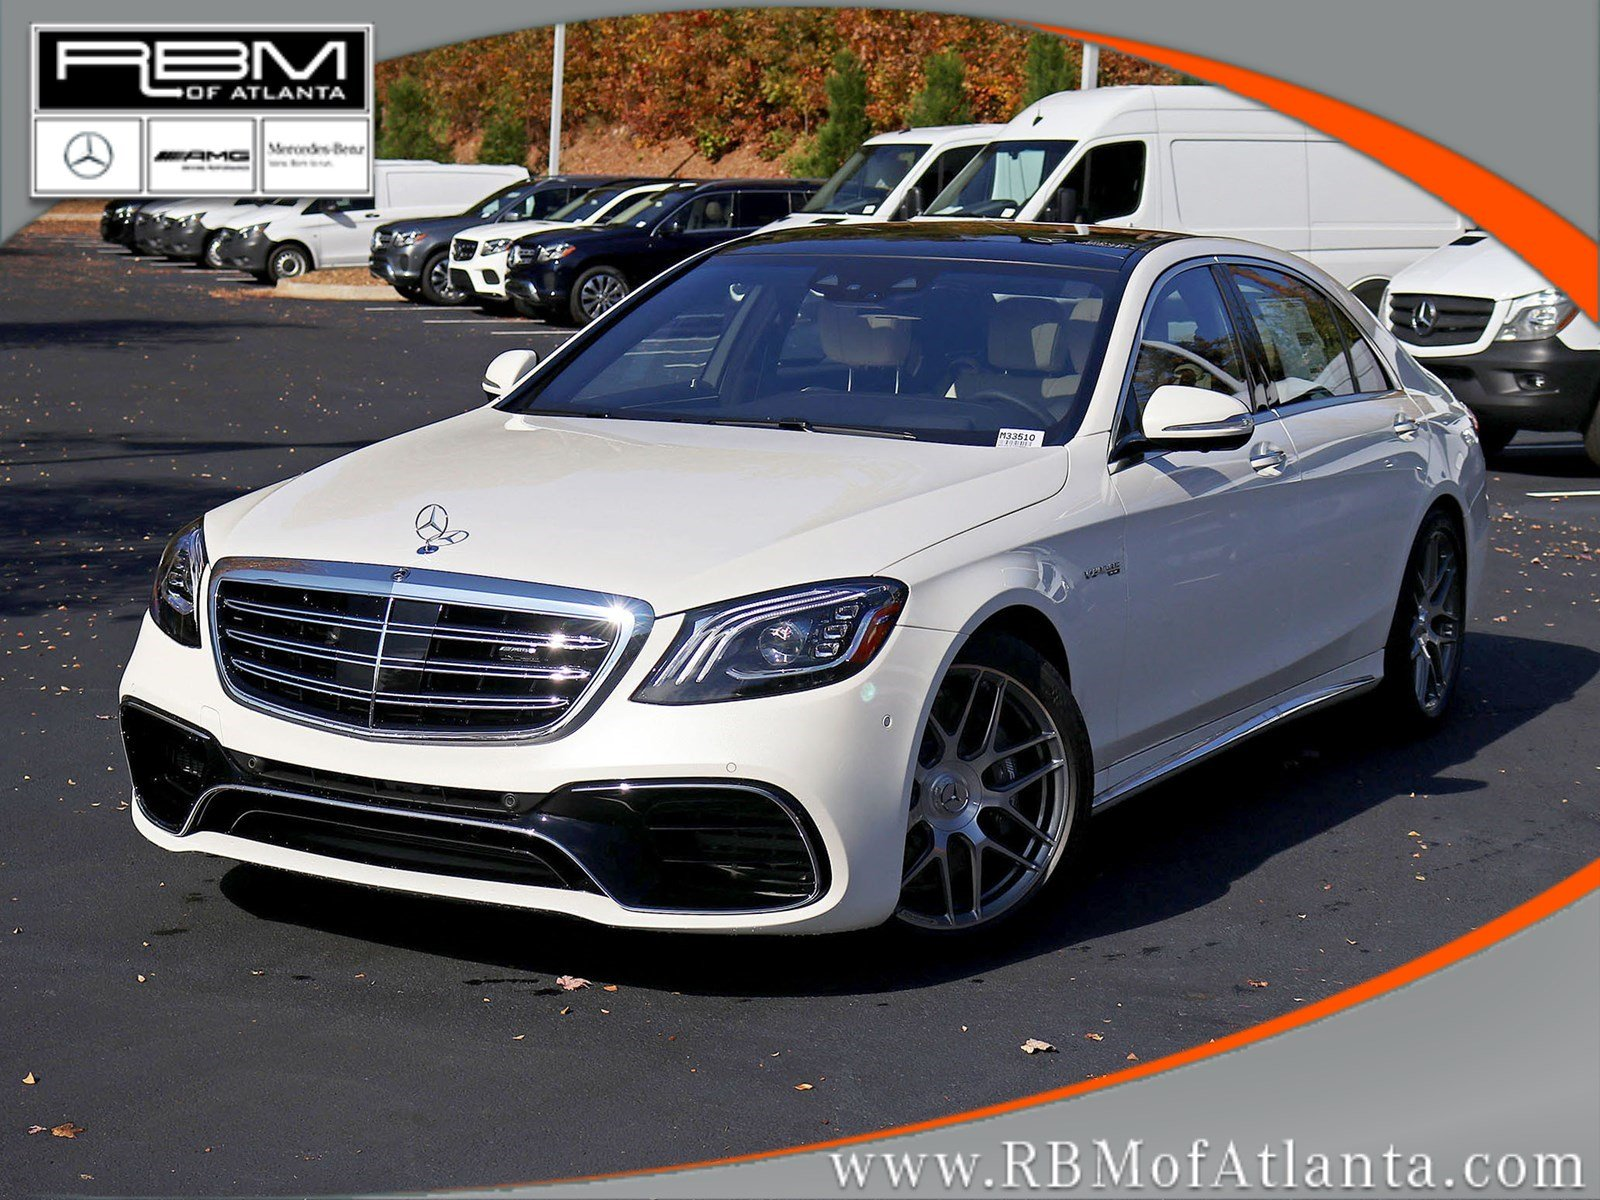 New 2019 Mercedes Benz S Class AMG S 63 SEDAN in Atlanta M